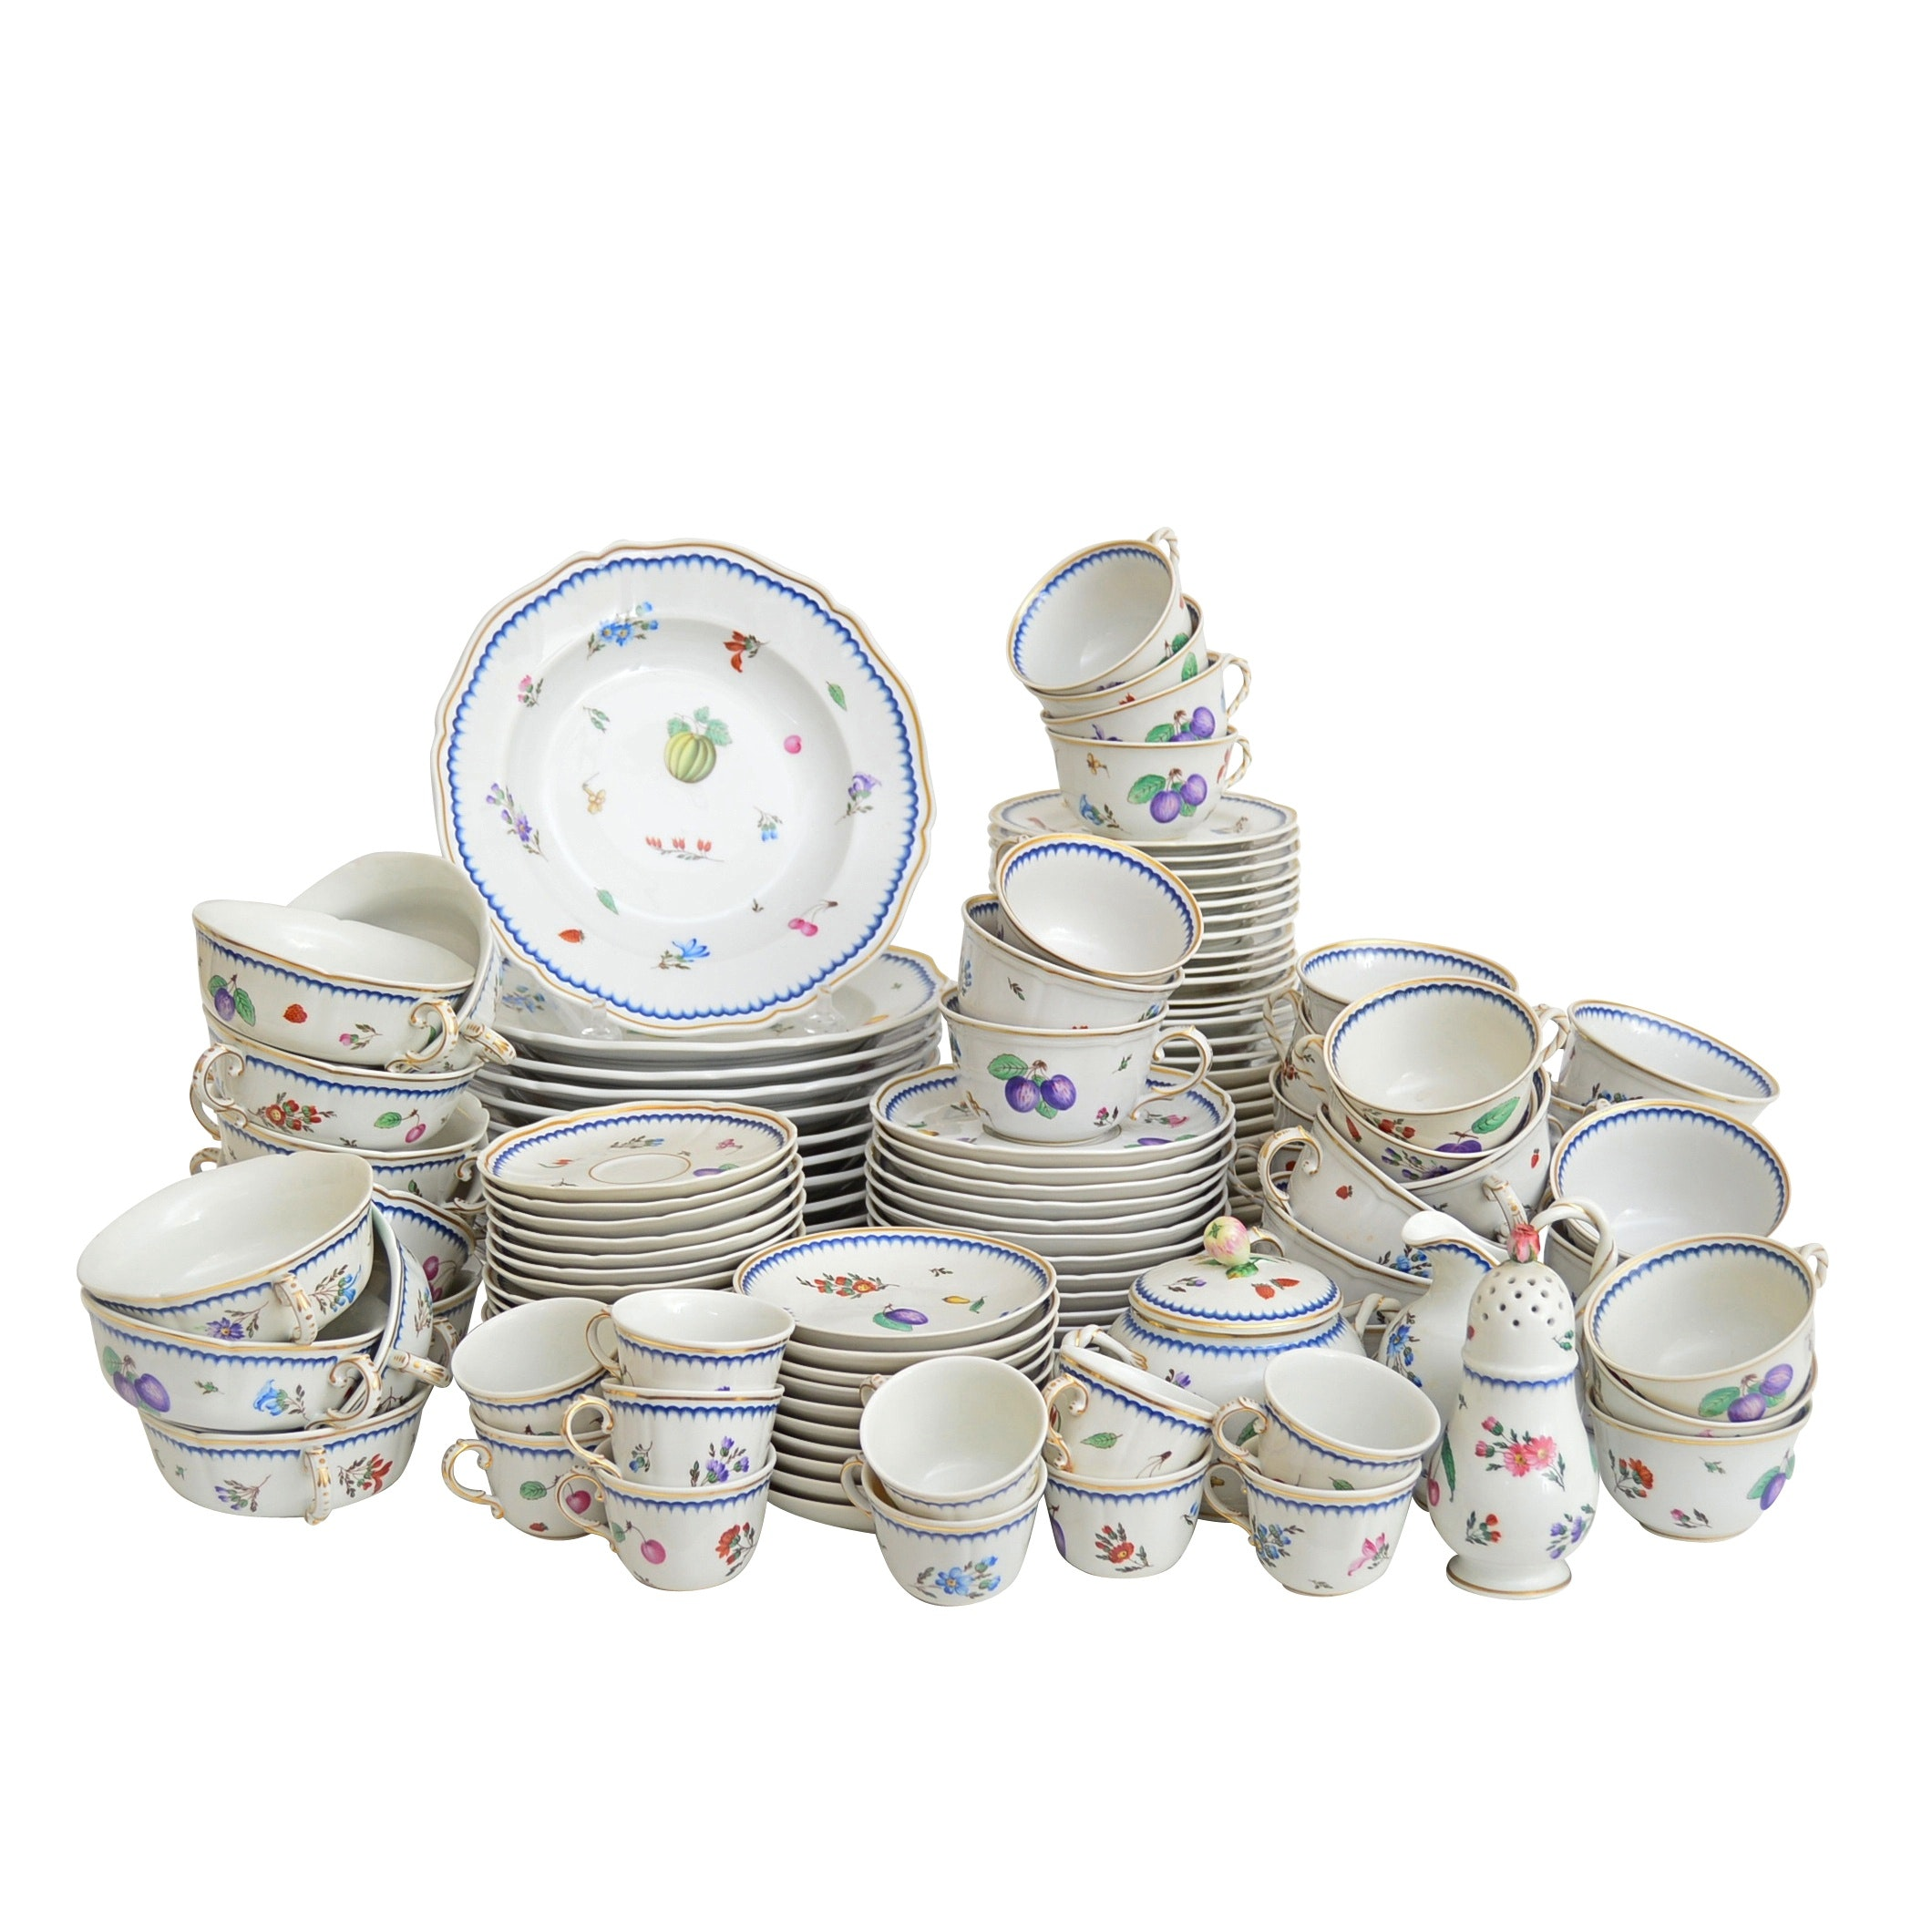 "Set of Richard Ginori ""Pittorio di Doccia"" Porcelain Dinnerware"